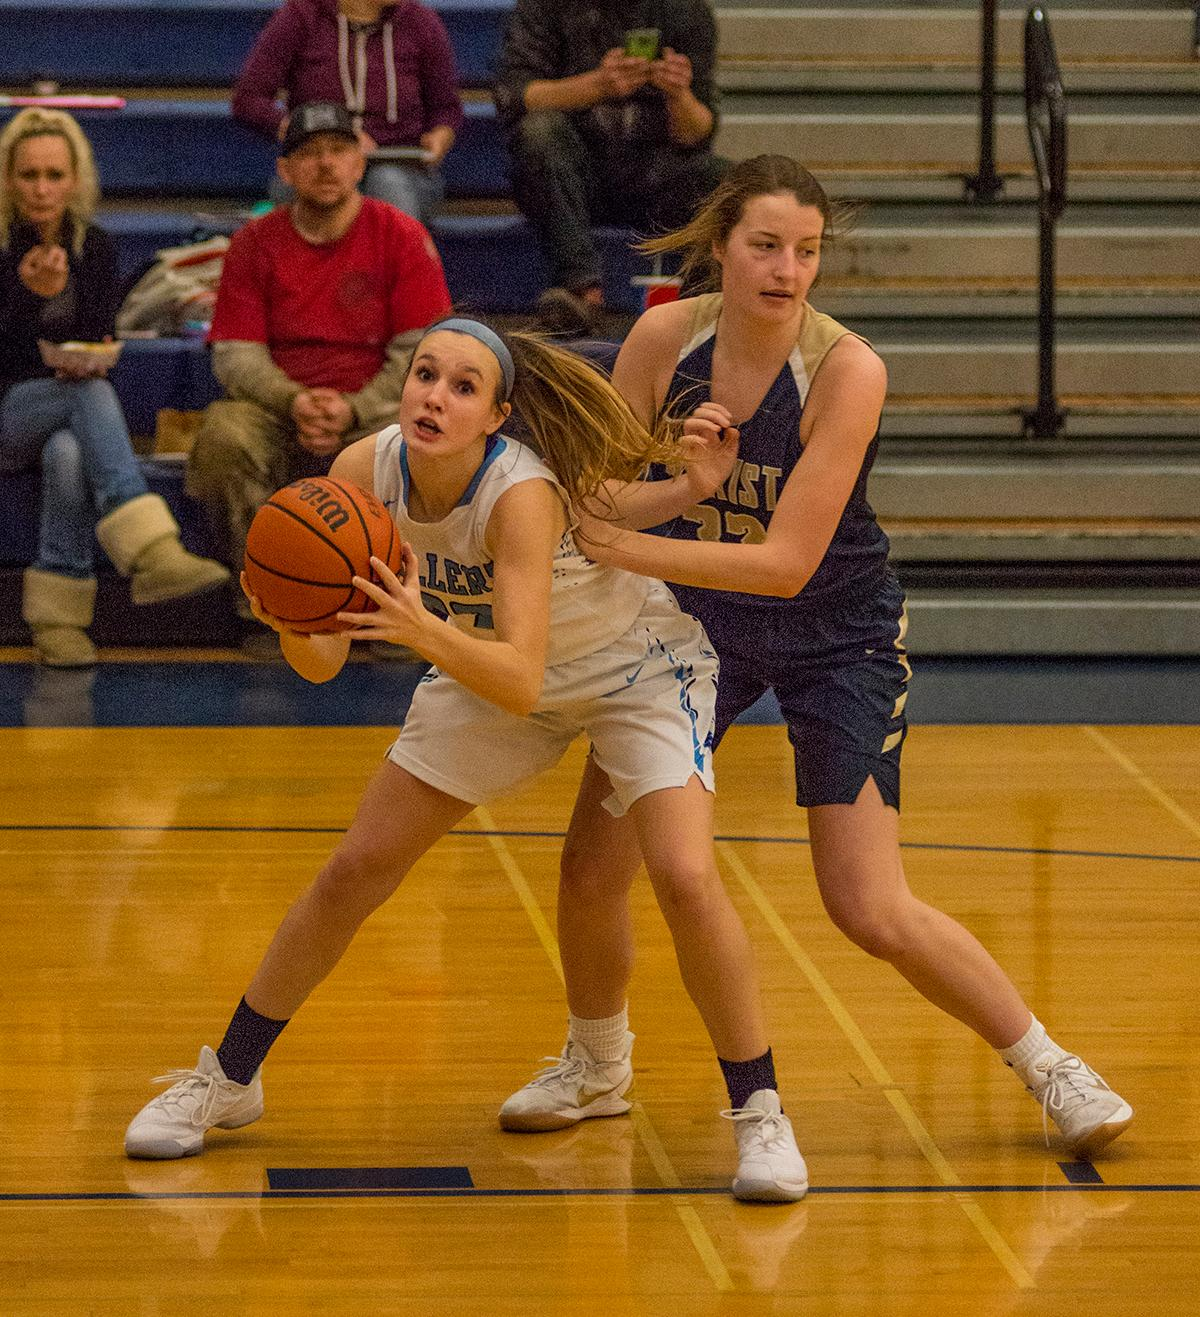 The Springfield Millers handed the Marist Spartans their first conference loss of the season, 40-37. Both Springfield and Marist are now tied for 1st place in the Midwestern League. (Photo courtesy of Dan Morrison, Oregon News Lab).